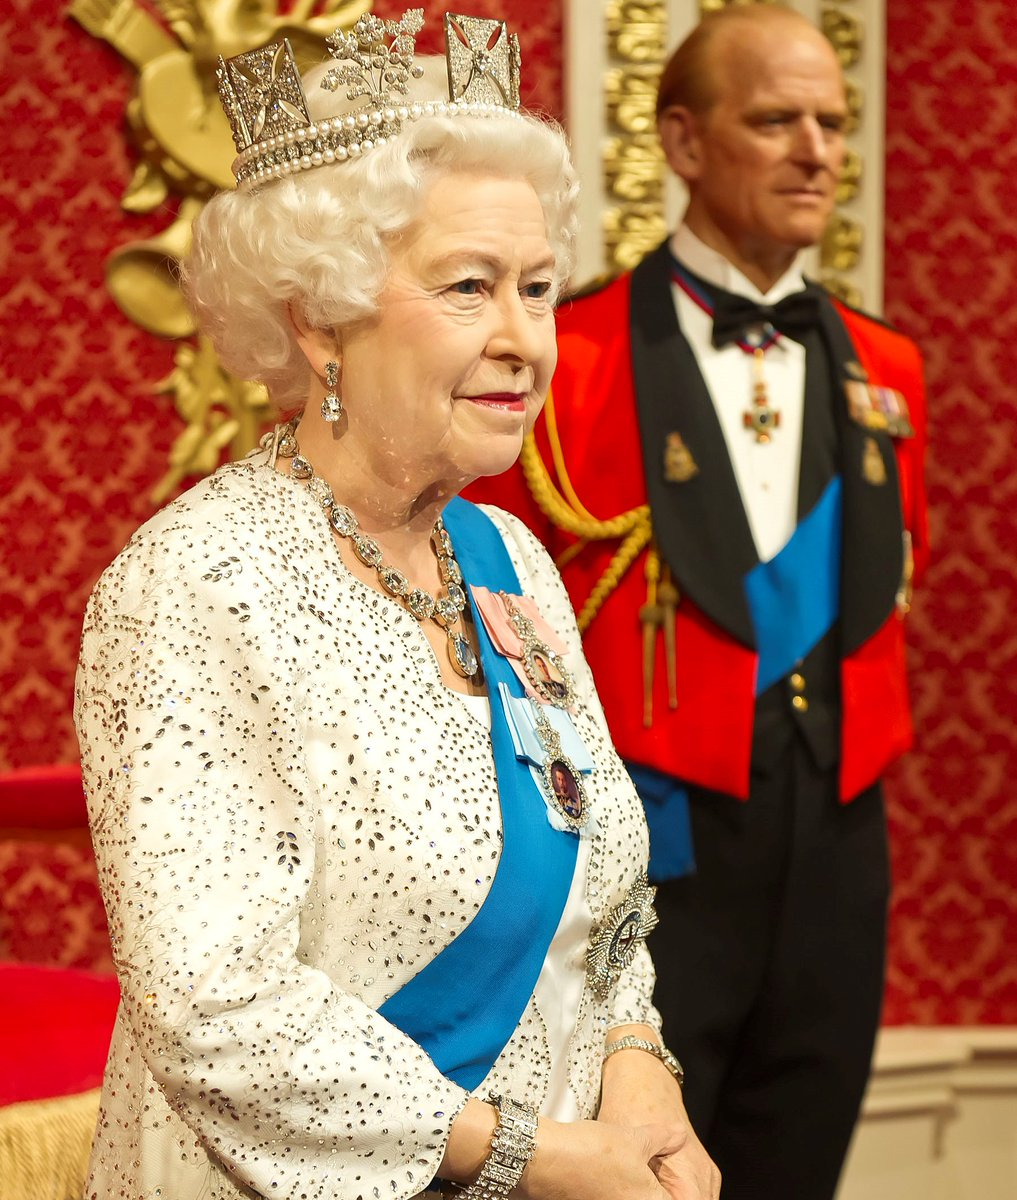 Happy Birthday to HRH Queen Elizabeth II! Many happy returns, ma'am. #queensbirthday